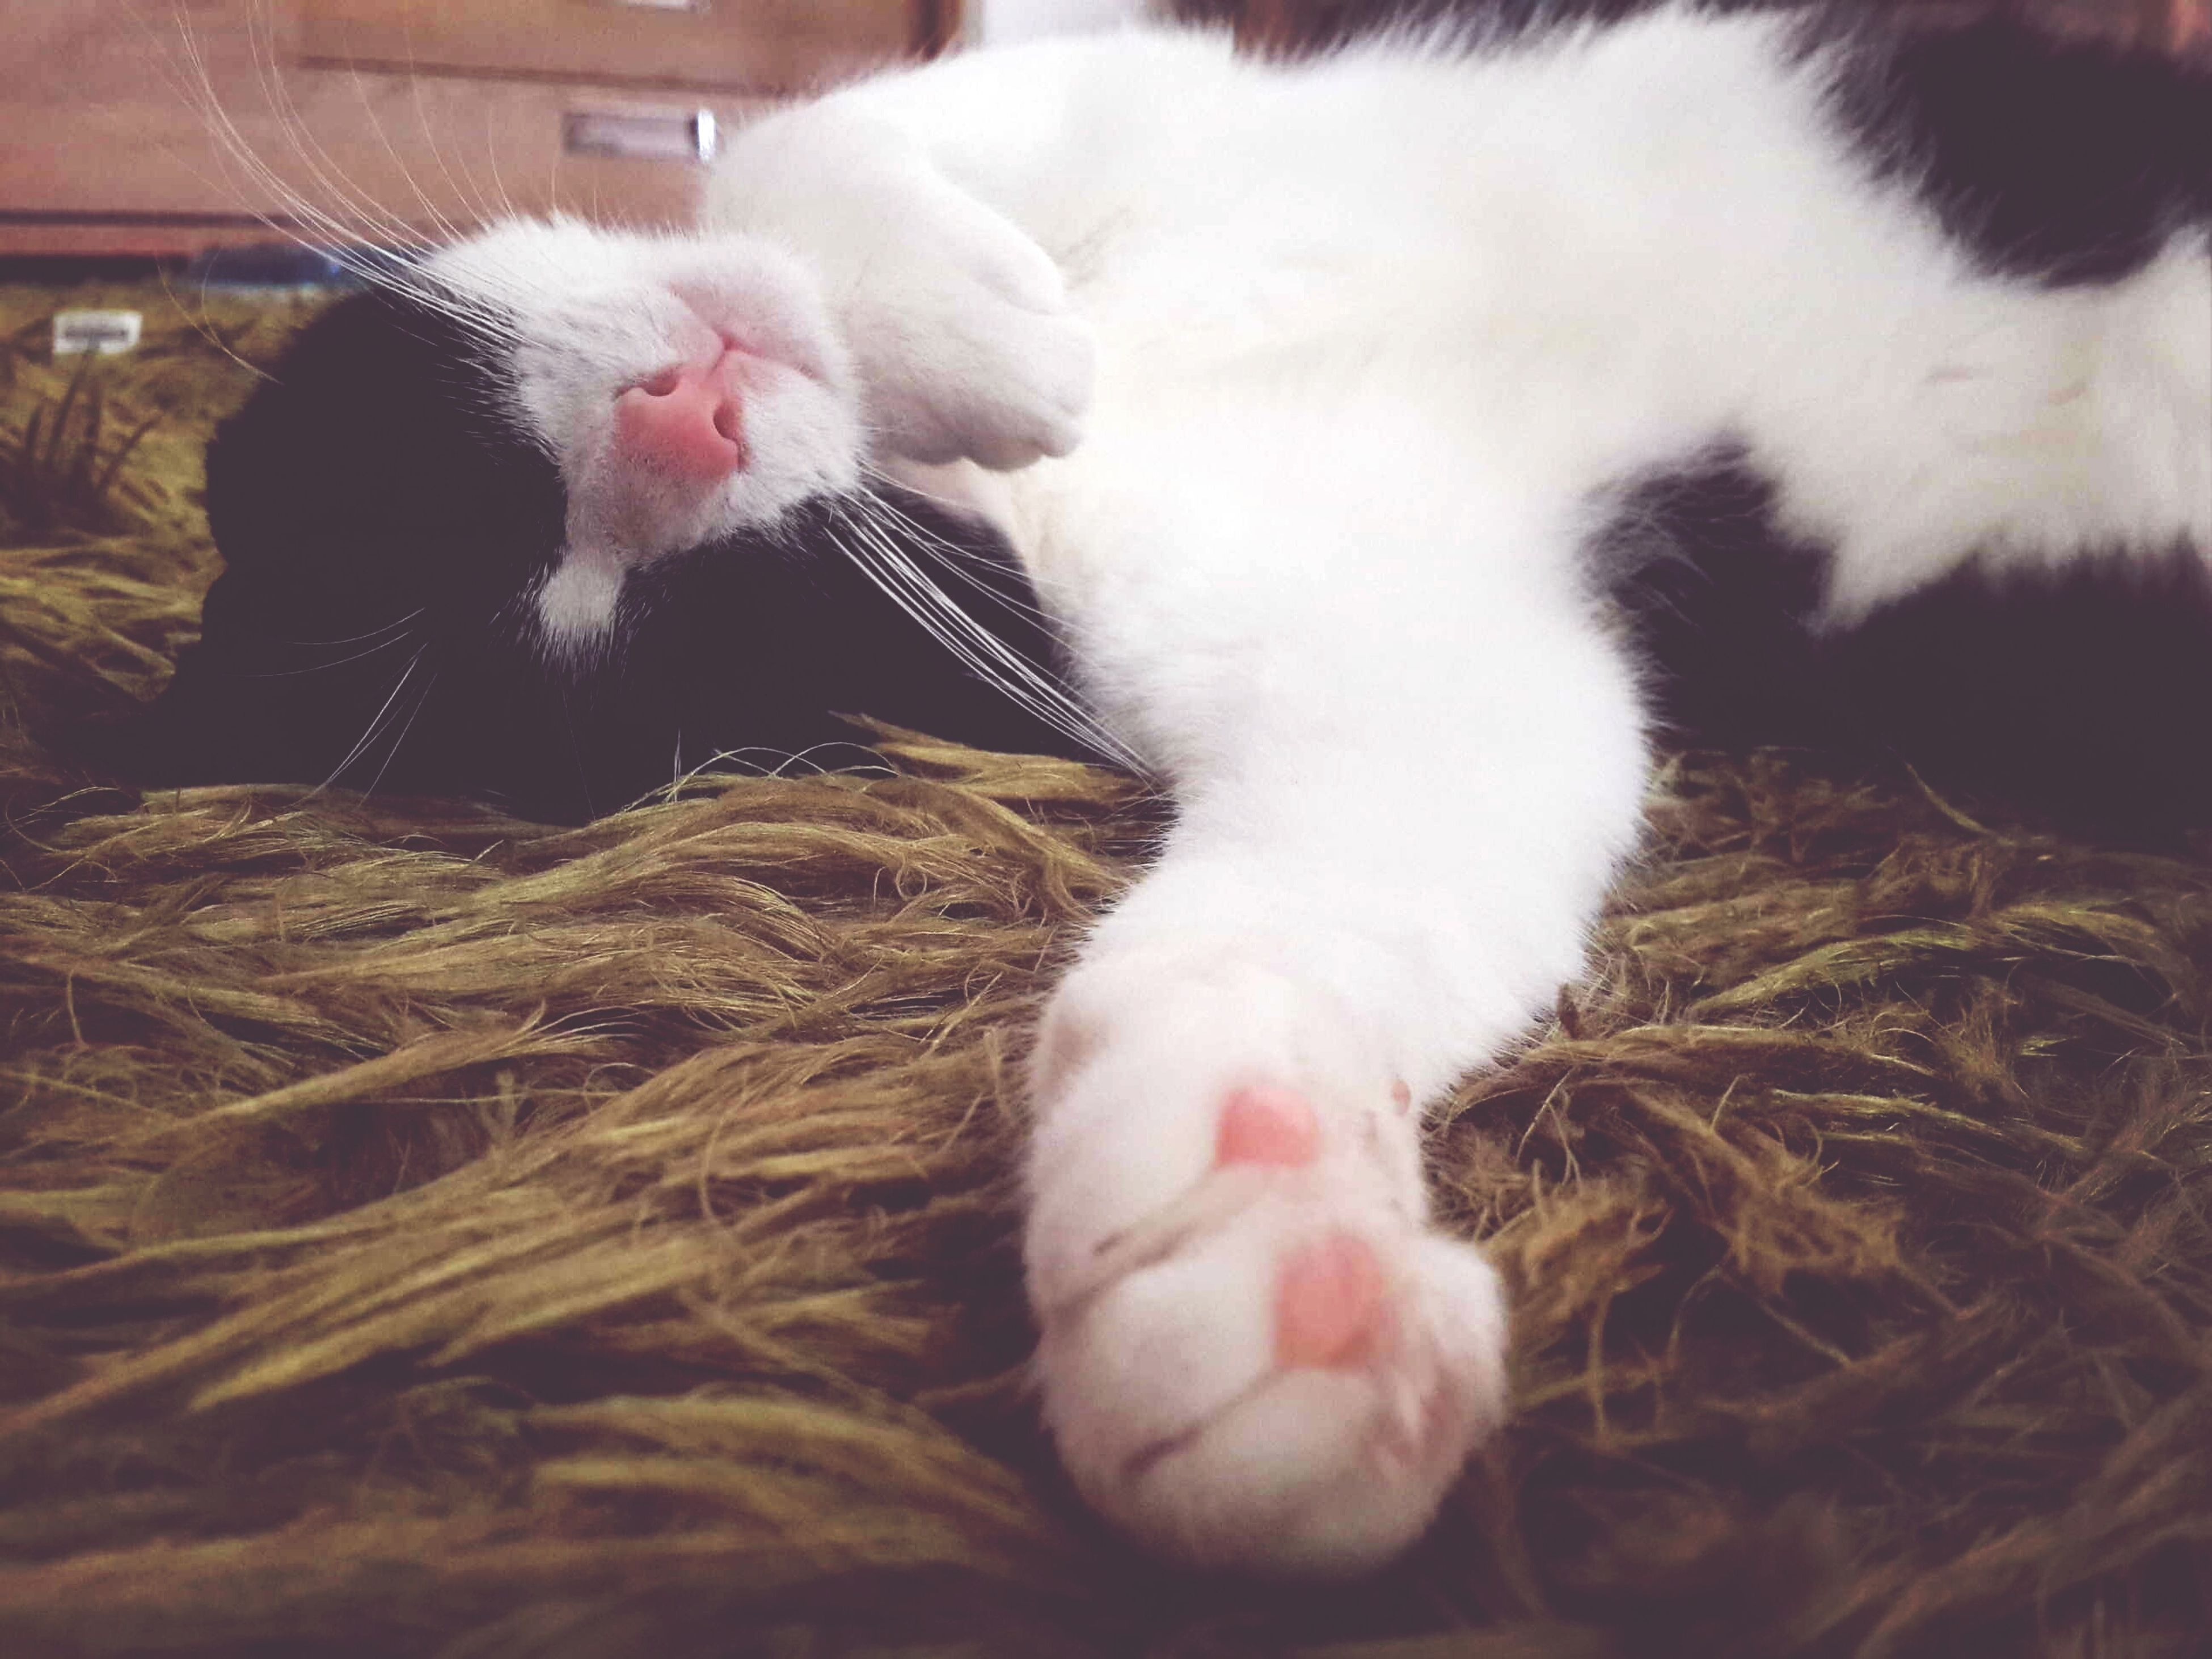 domestic animals, animal themes, pets, mammal, one animal, domestic cat, indoors, cat, feline, relaxation, close-up, resting, whisker, sleeping, white color, lying down, zoology, home interior, animal head, young animal